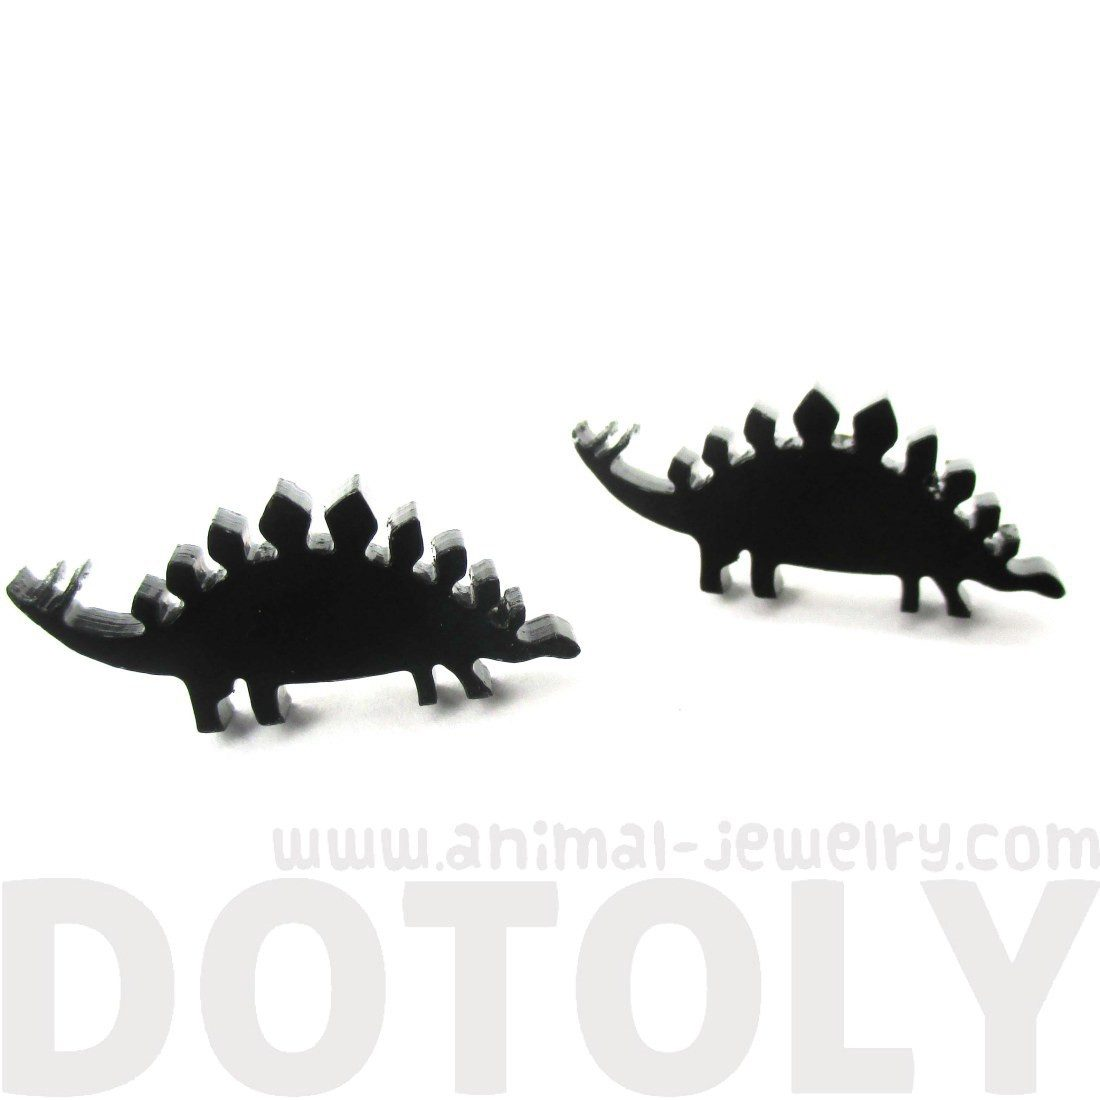 Stegosaurus Silhouette Dinosaur Shaped Laser Cut Black Stud Earrings